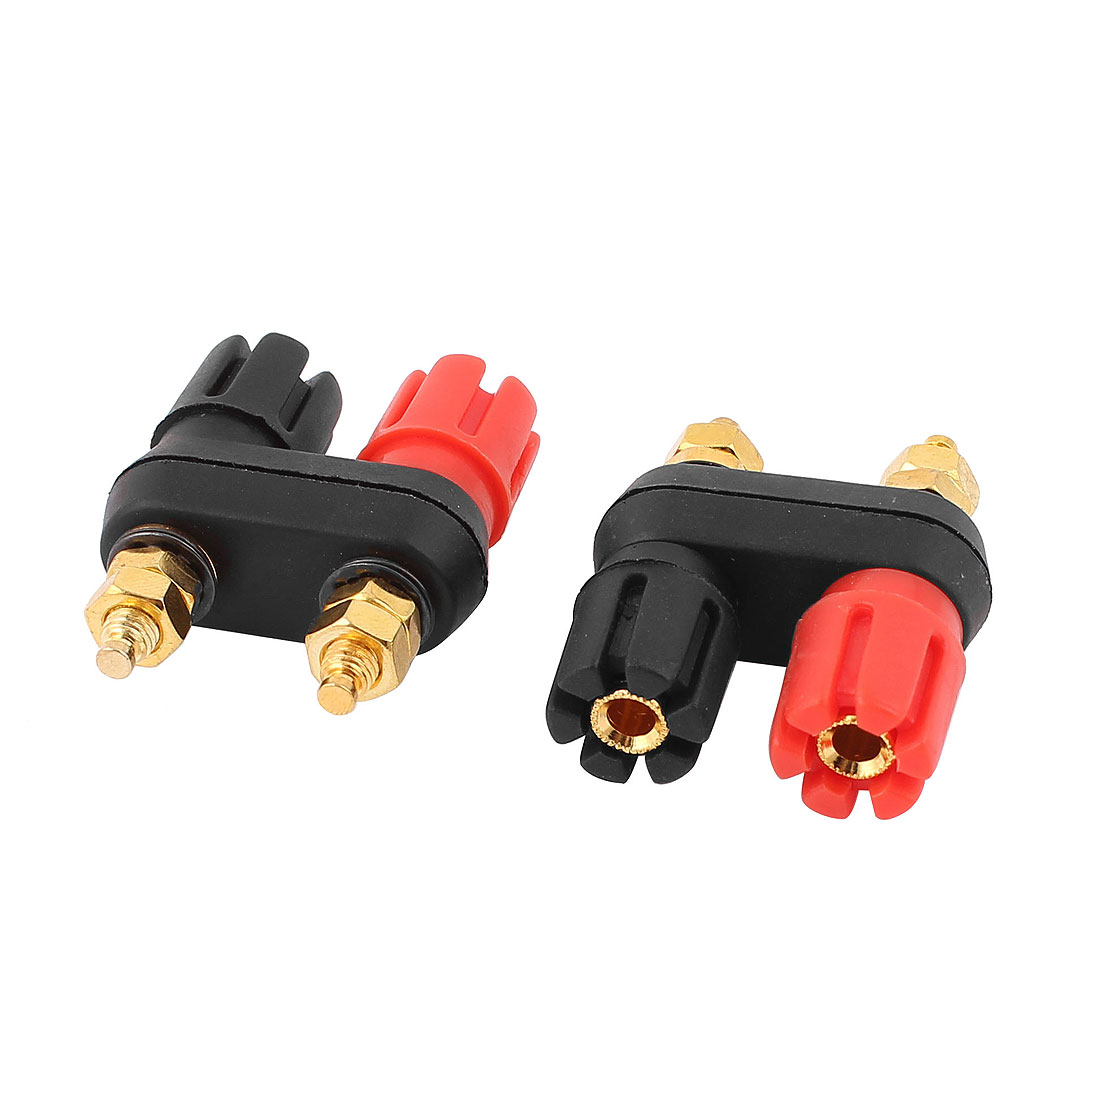 2pcs Dual Female Banana Connector Jack Terminal Binding Post for Speaker Amplifier